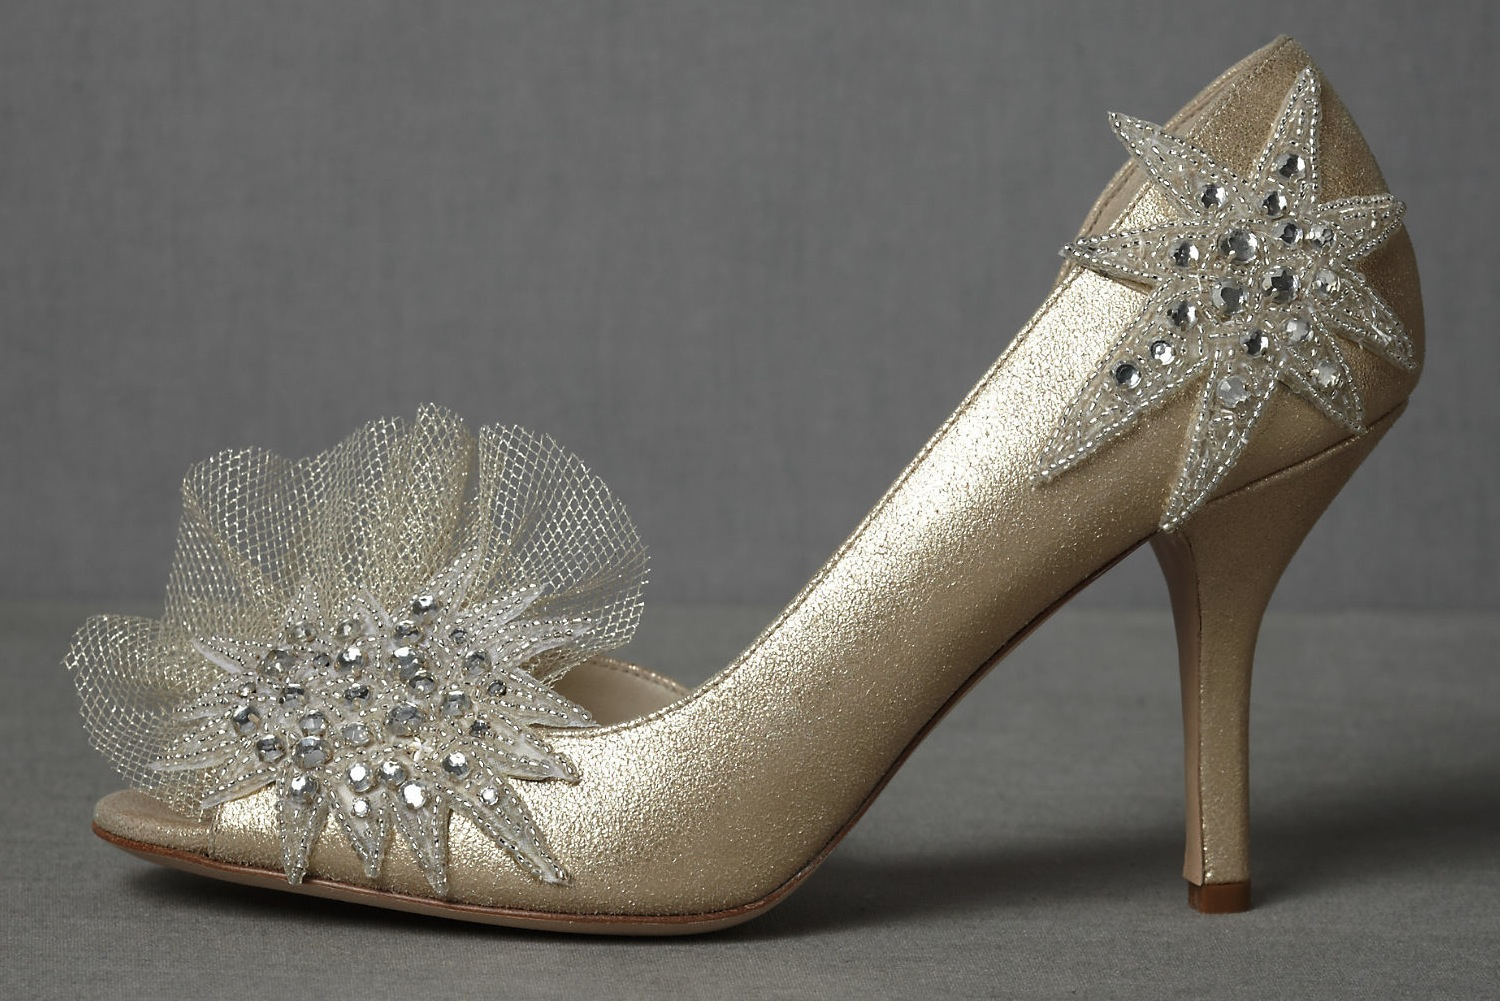 Wedding-accessories-inspiration-shimmery-bridal-heels-3.original